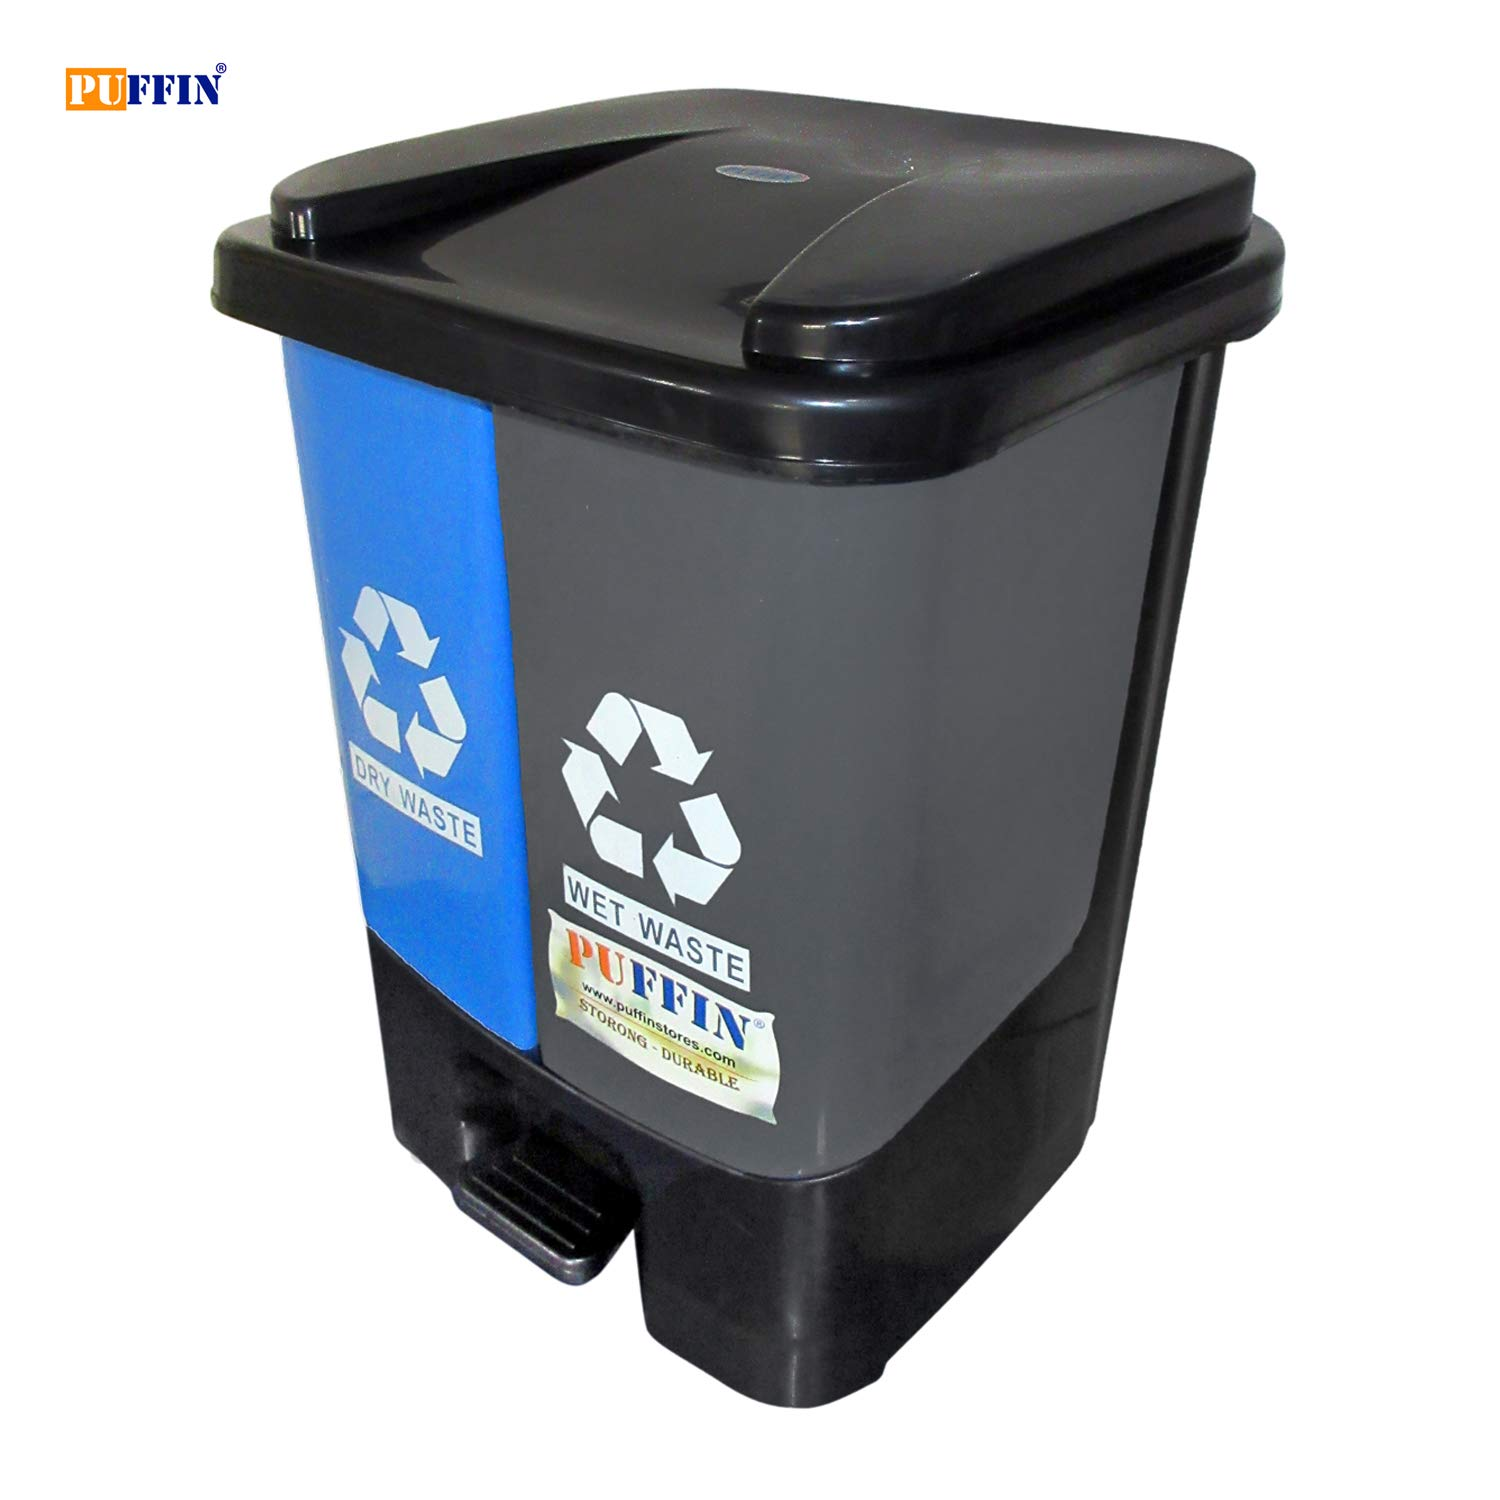 Puffin Garbage Waste Plastic Dustbin Kitchen Office Home & Commercial Dustbin Recycle Bin 2 in 1-20ltr